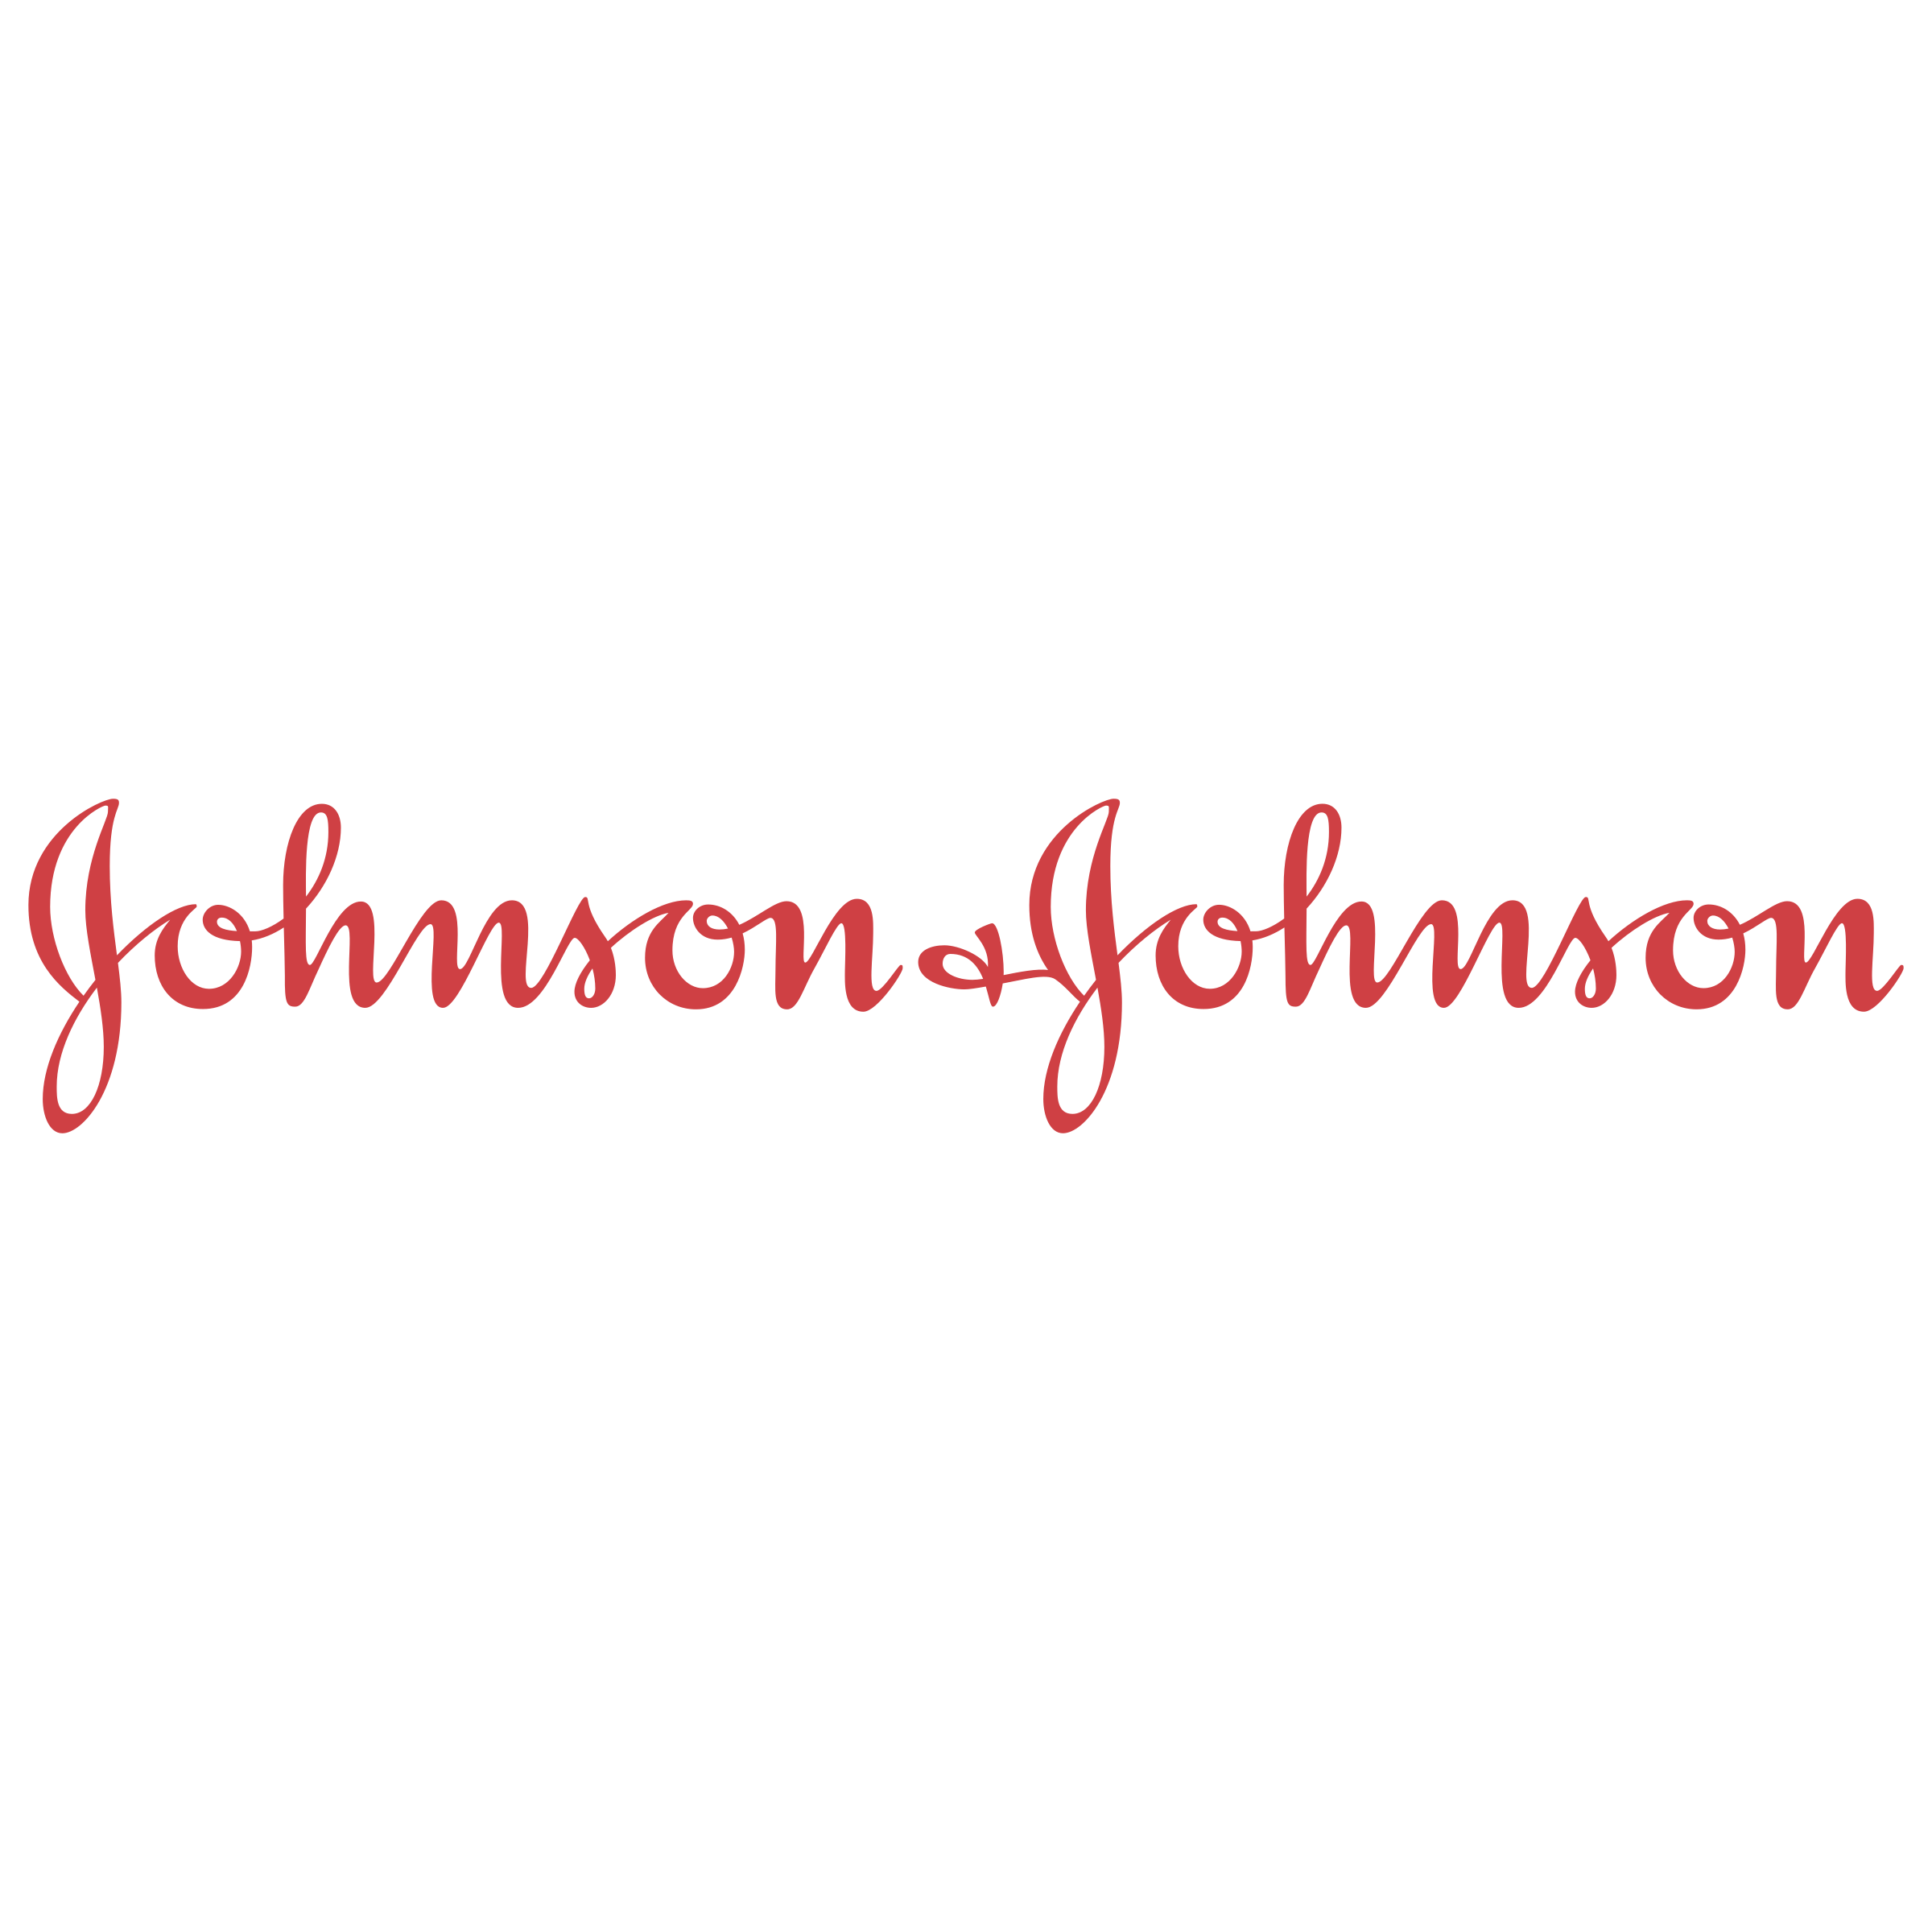 Johnson & johnson logo png. Transparent svg vector freebie